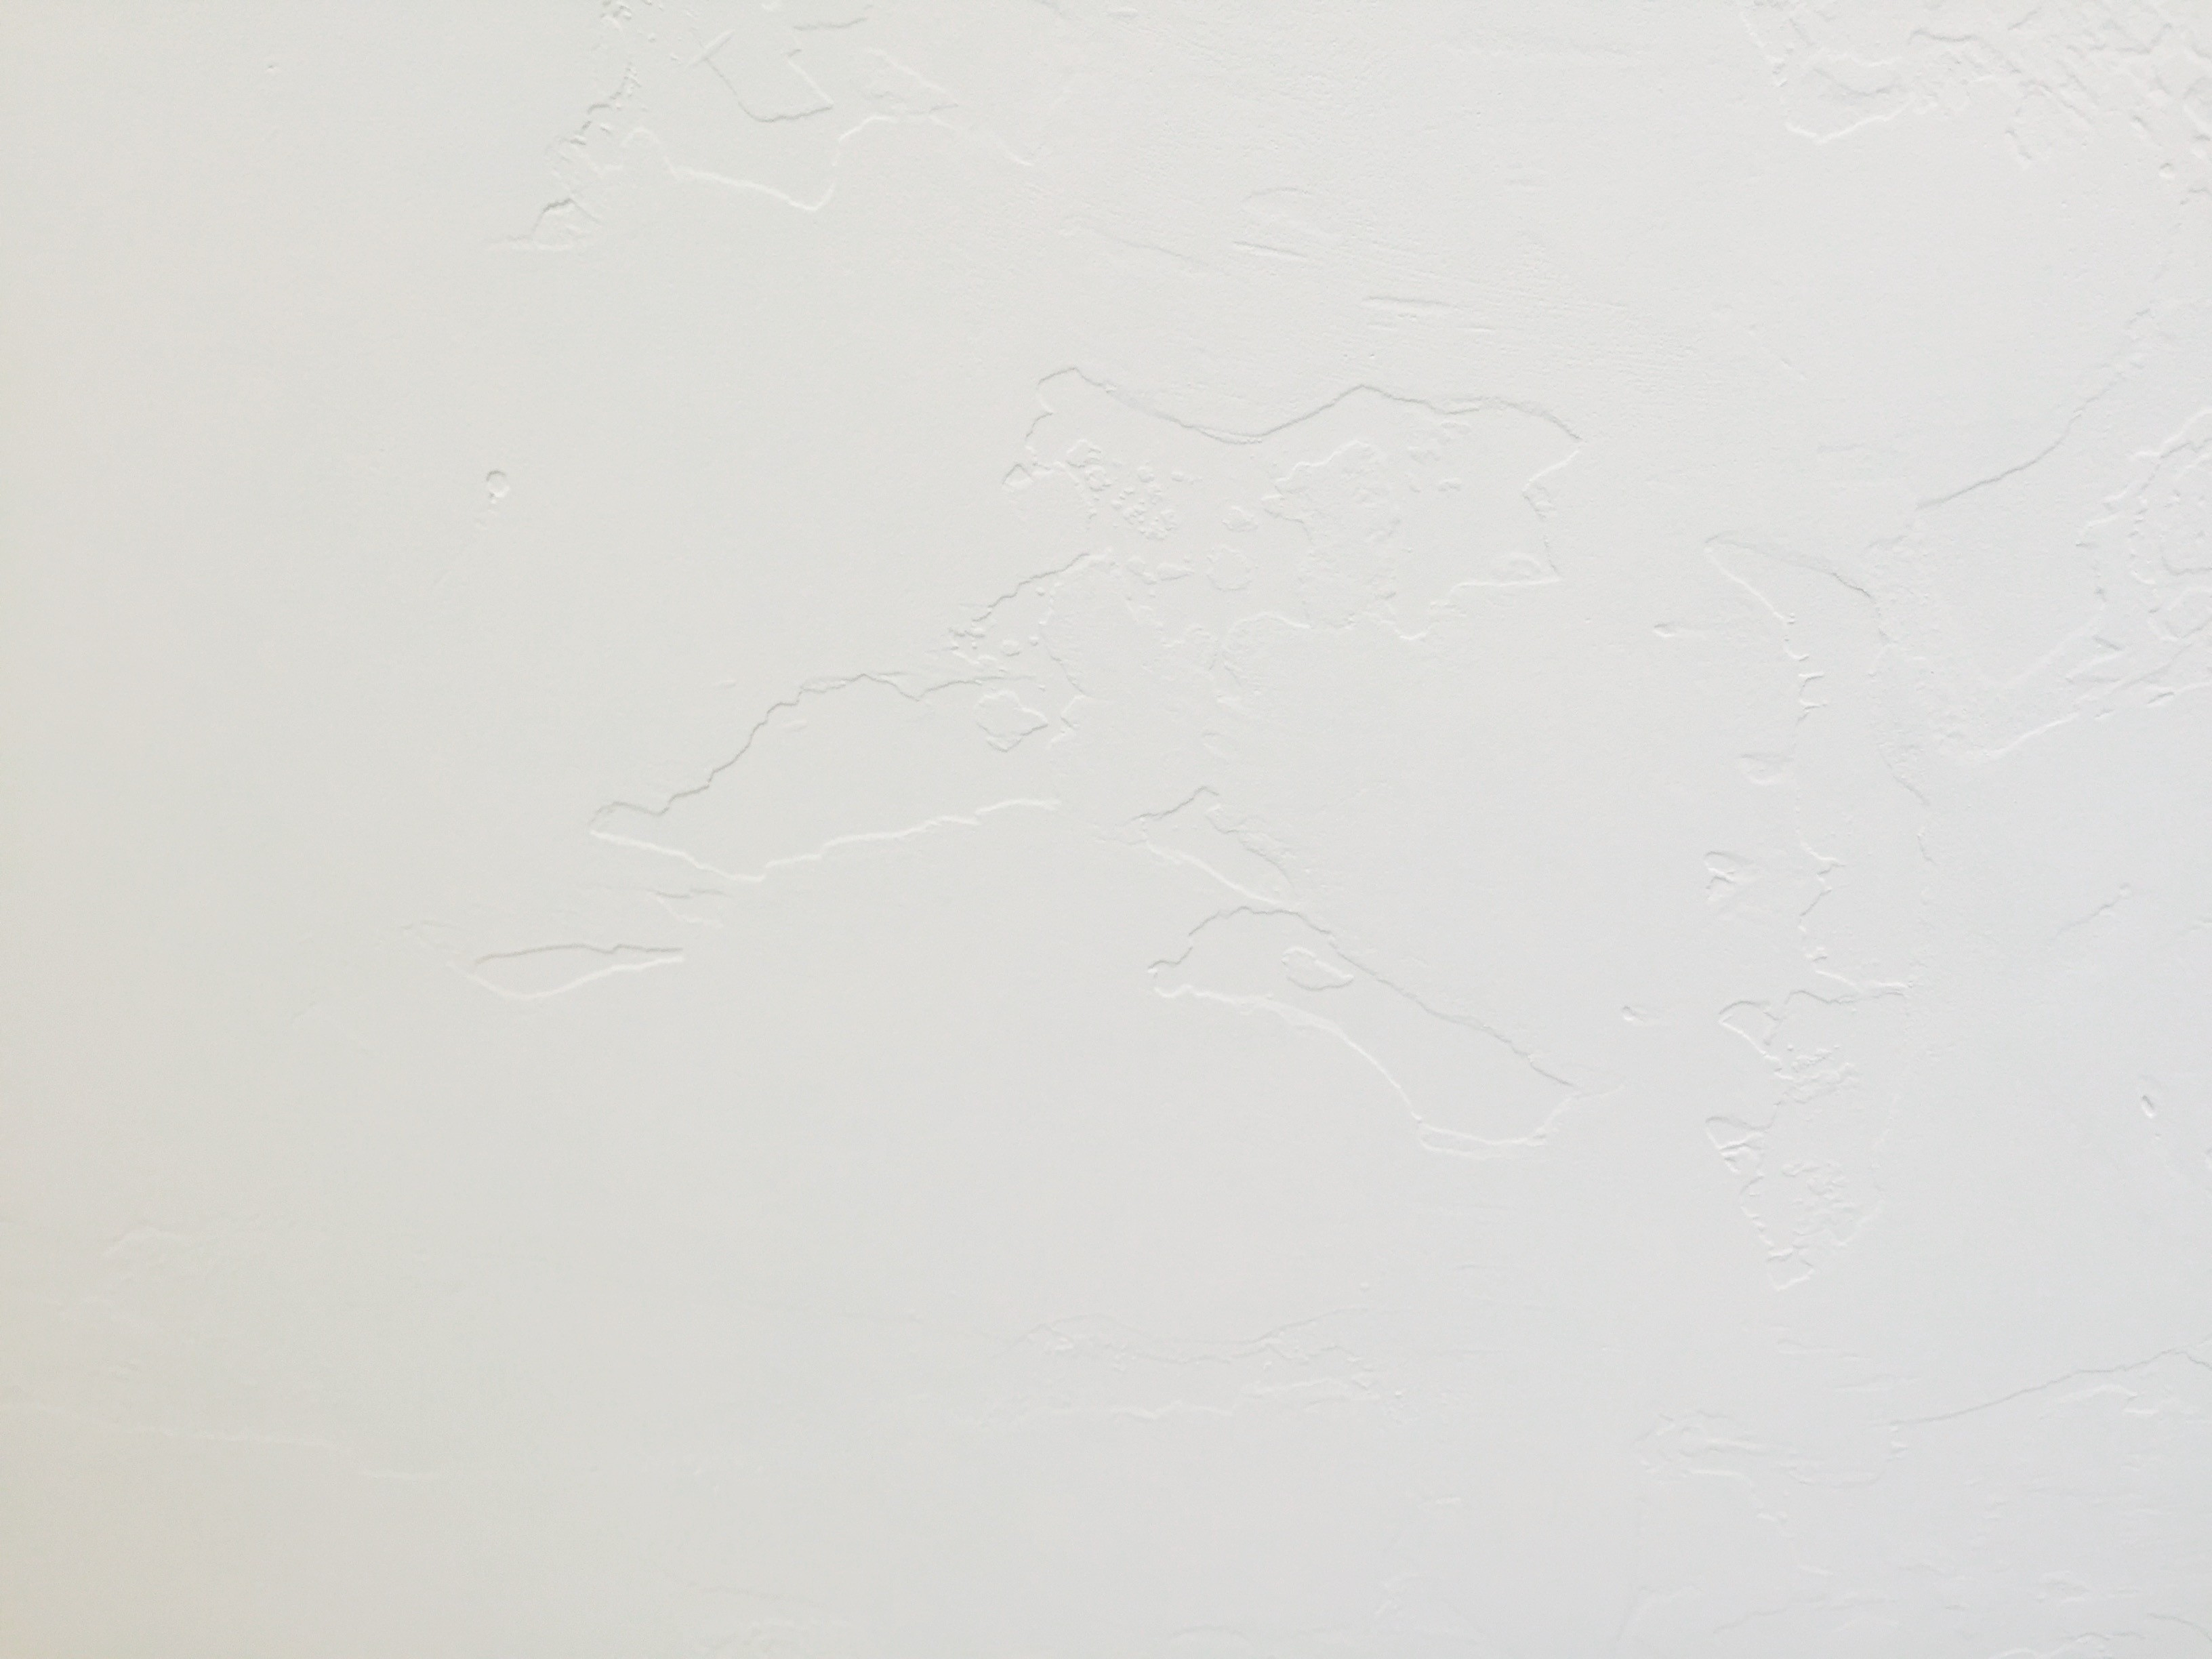 Gypsum Board Texture : Customized finishes roadrunner drywallroadrunner drywall